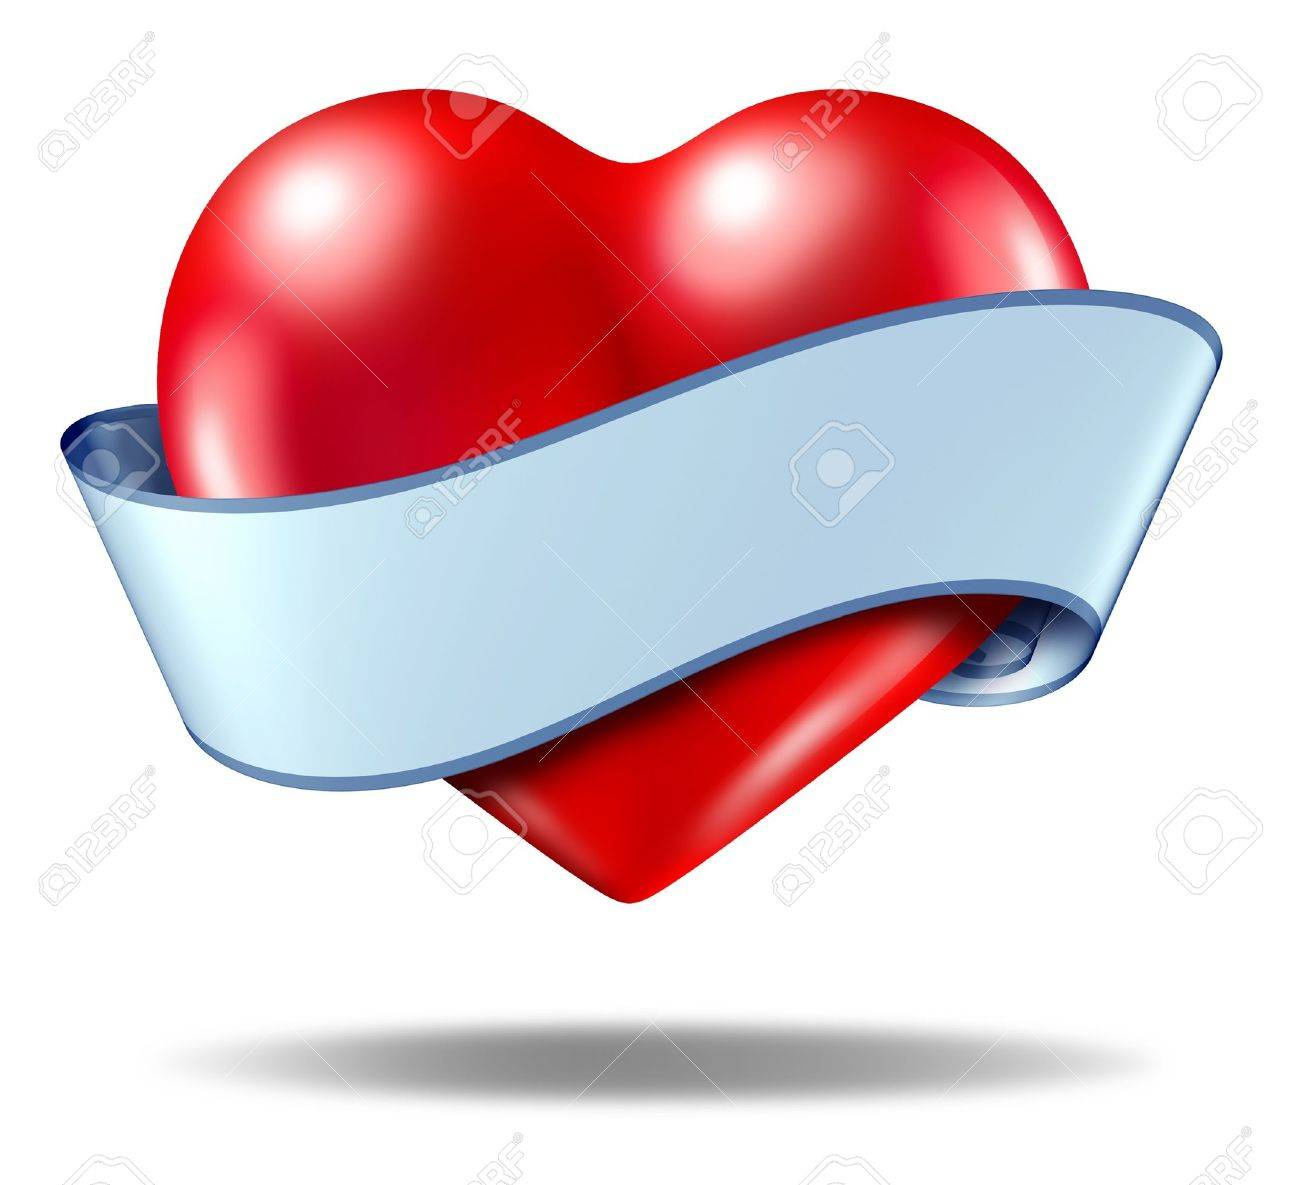 Heart emblem and love icon with a blank ribbon scroll around the va;entines symbol on a white background. Stock Photo - 11718572